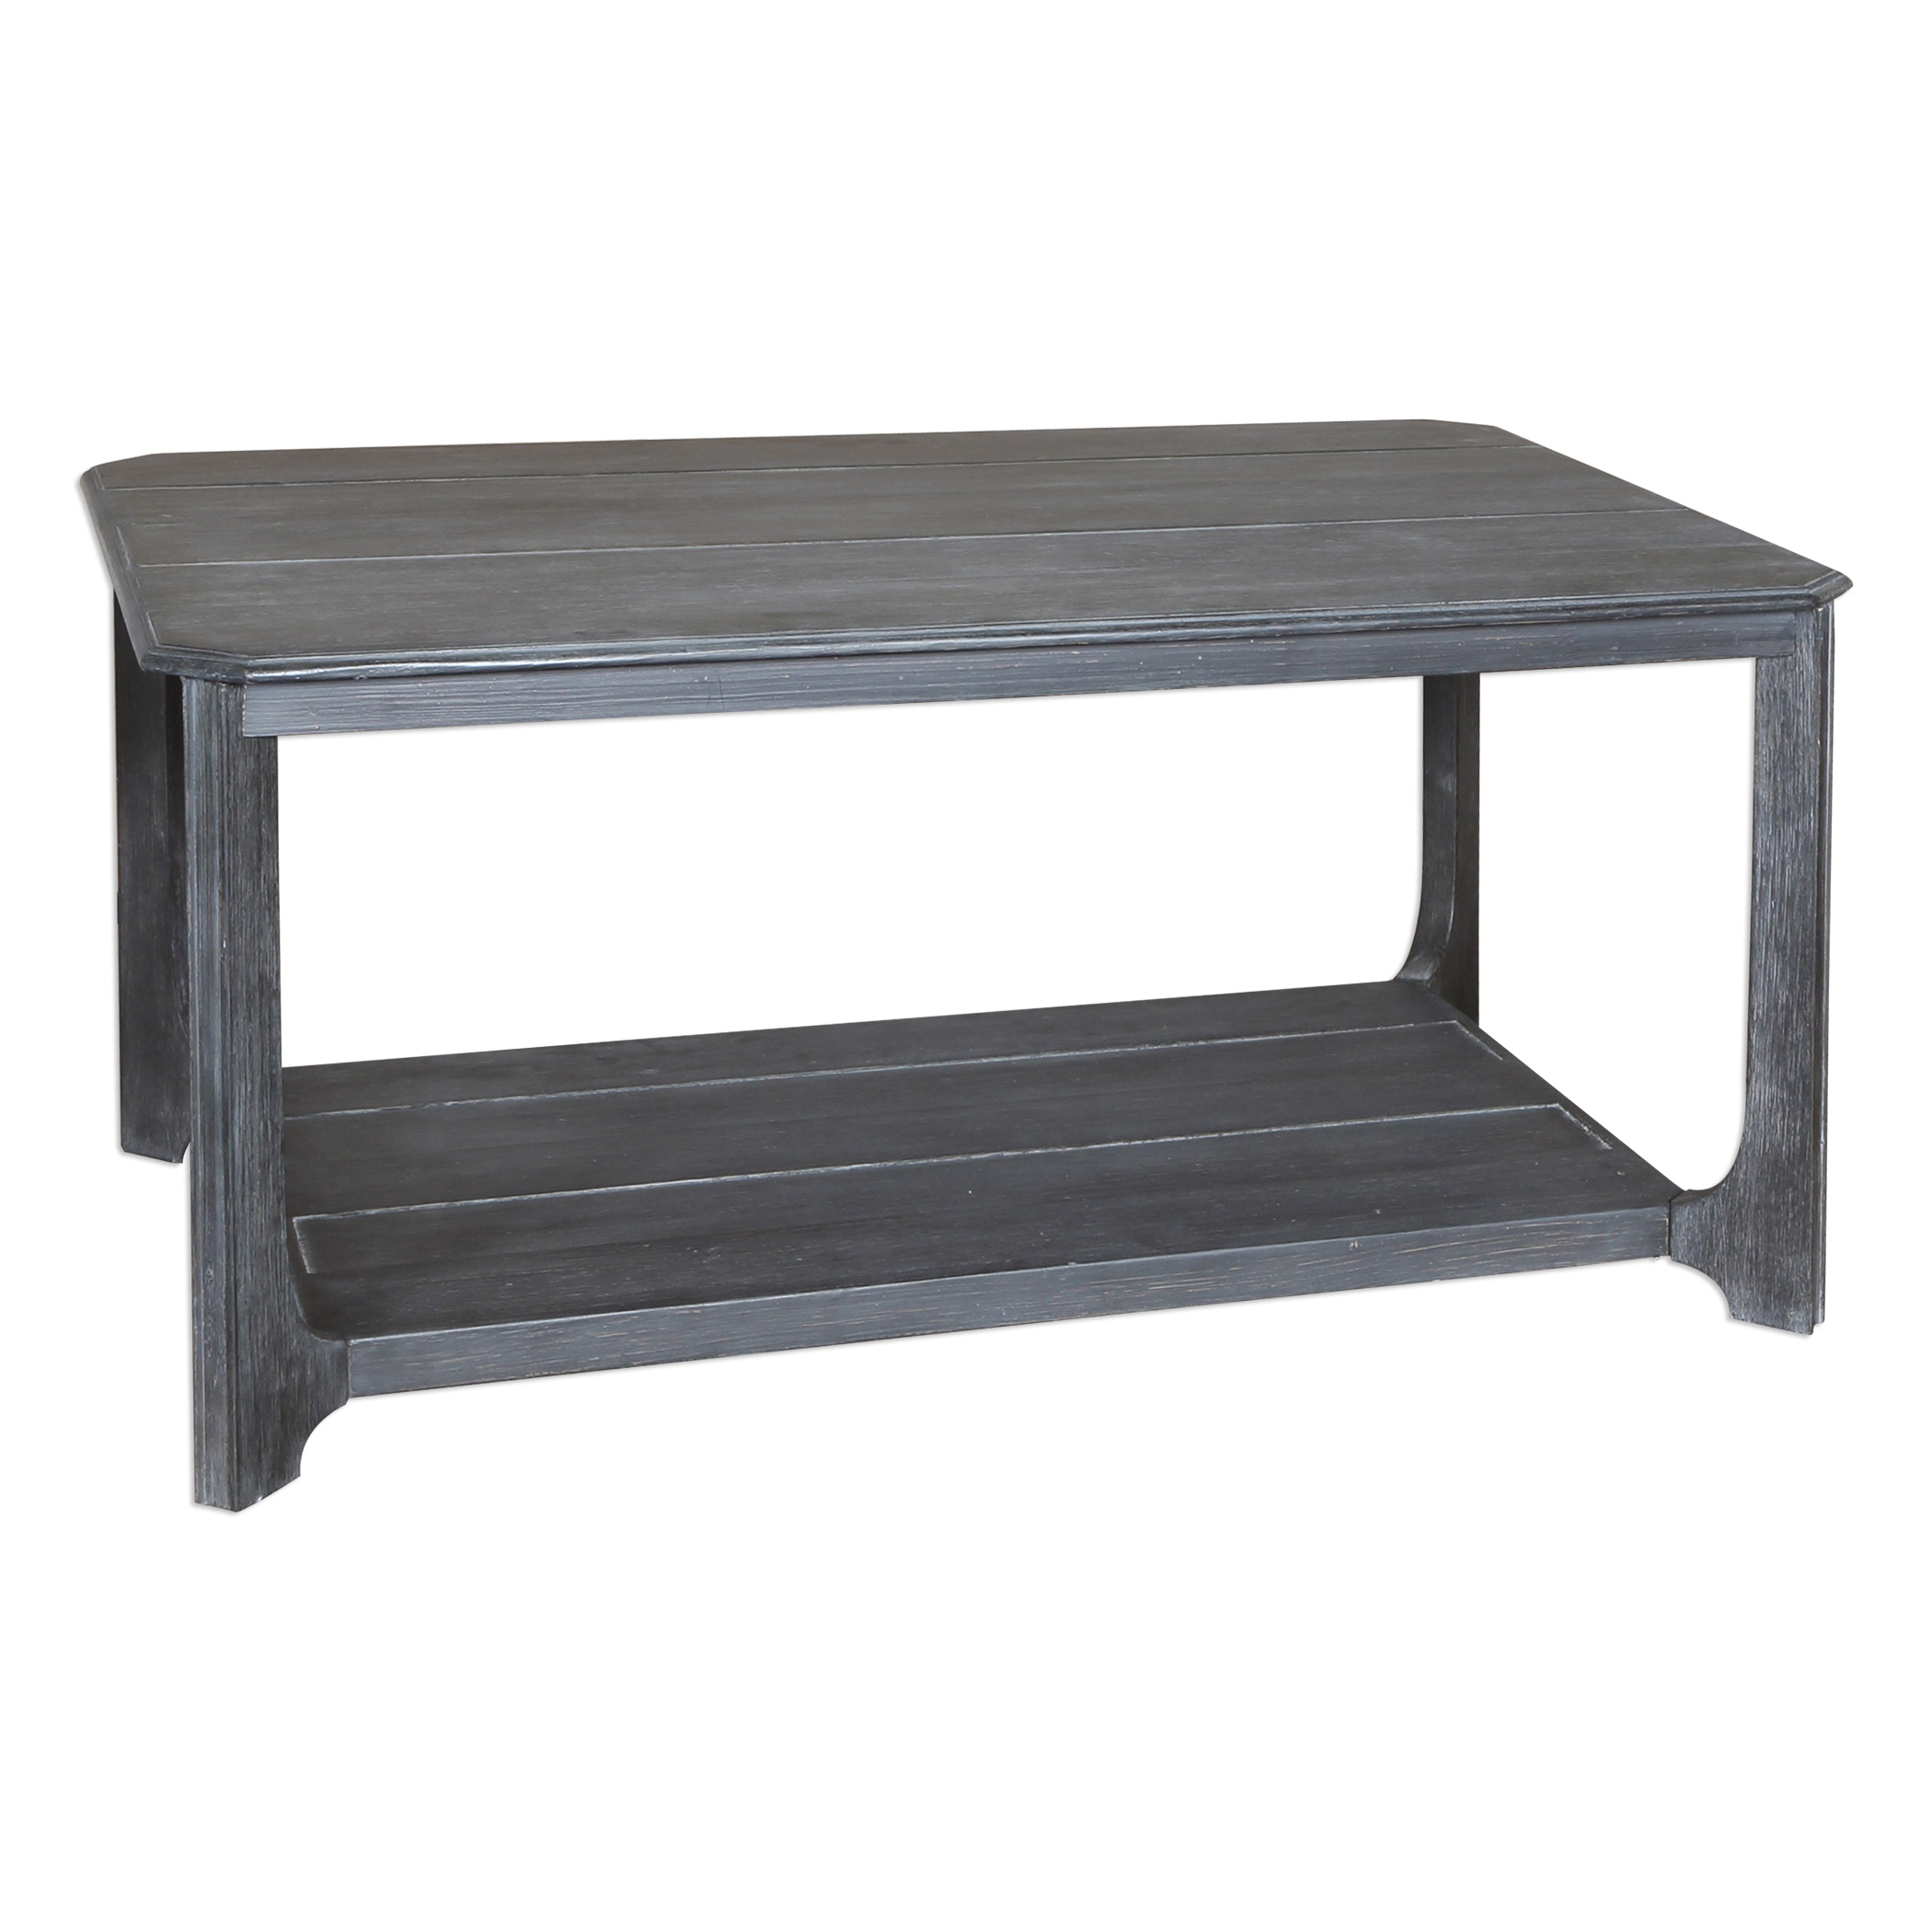 Uttermost Accent Furniture Garroway Wood Coffee Table - Item Number: 25930